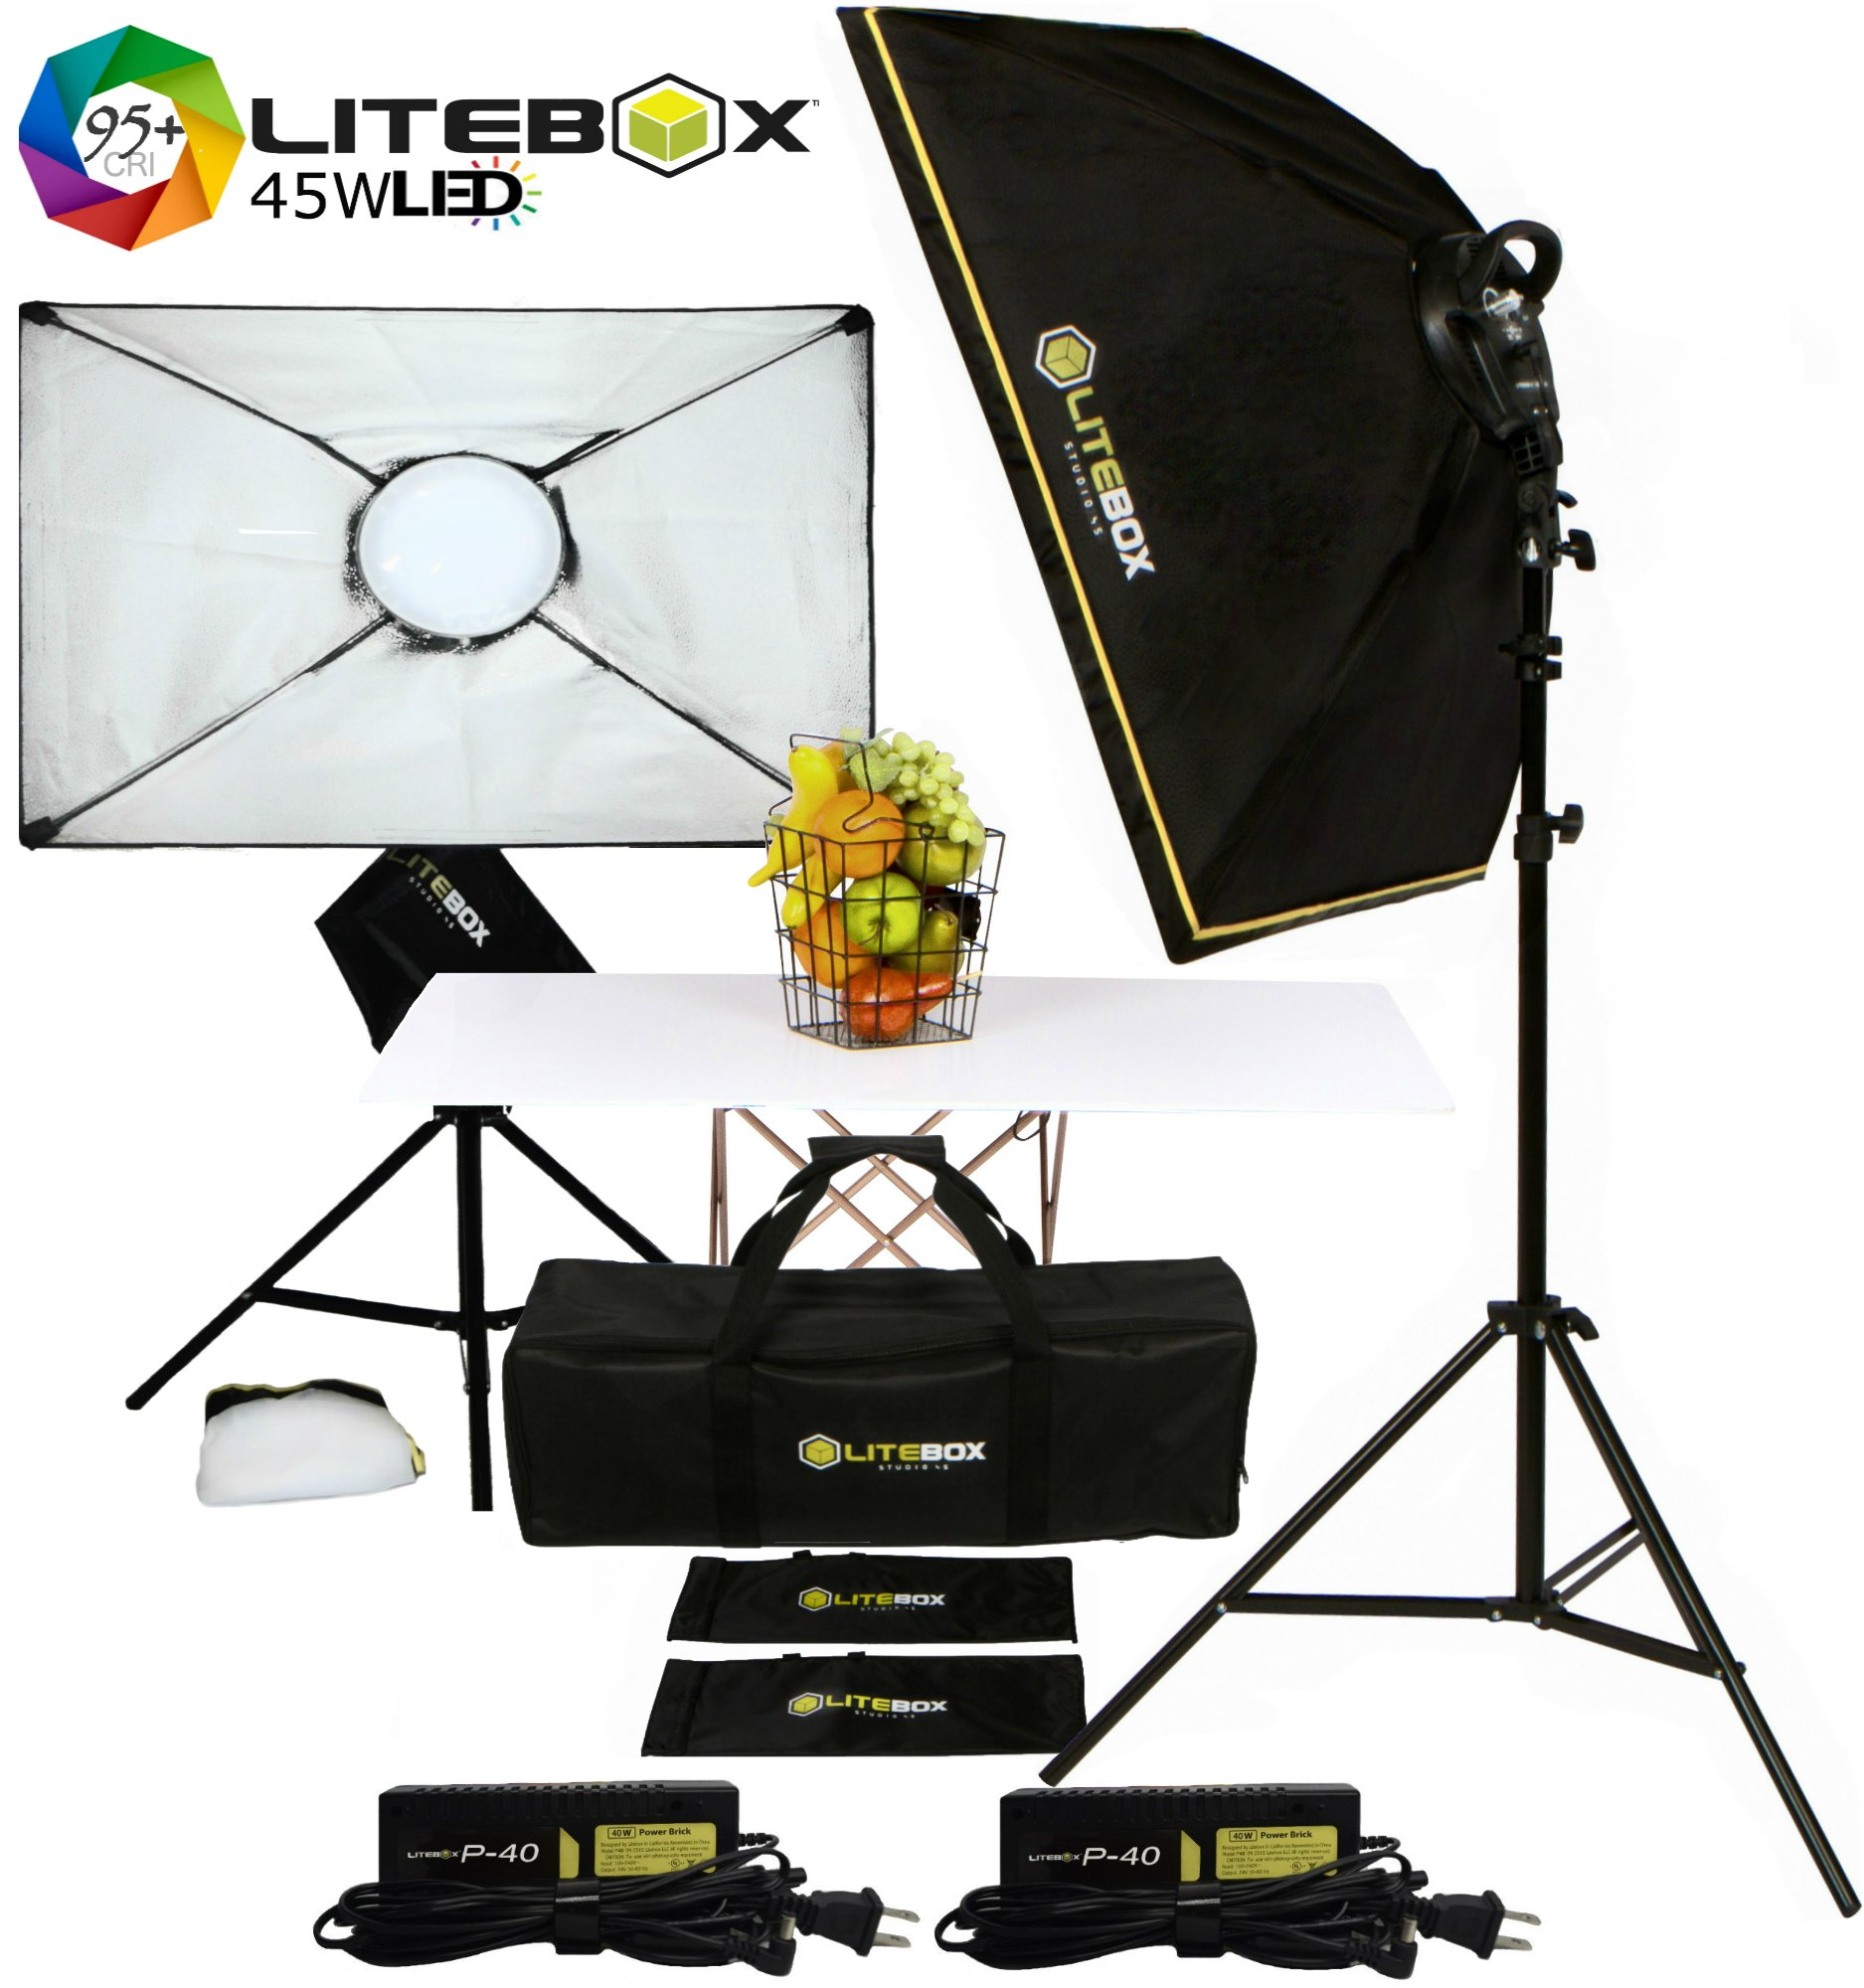 LITEBOX LED Softbox Lighting Kit for Professional Photography & Video - (Set of 2) by LiteBox